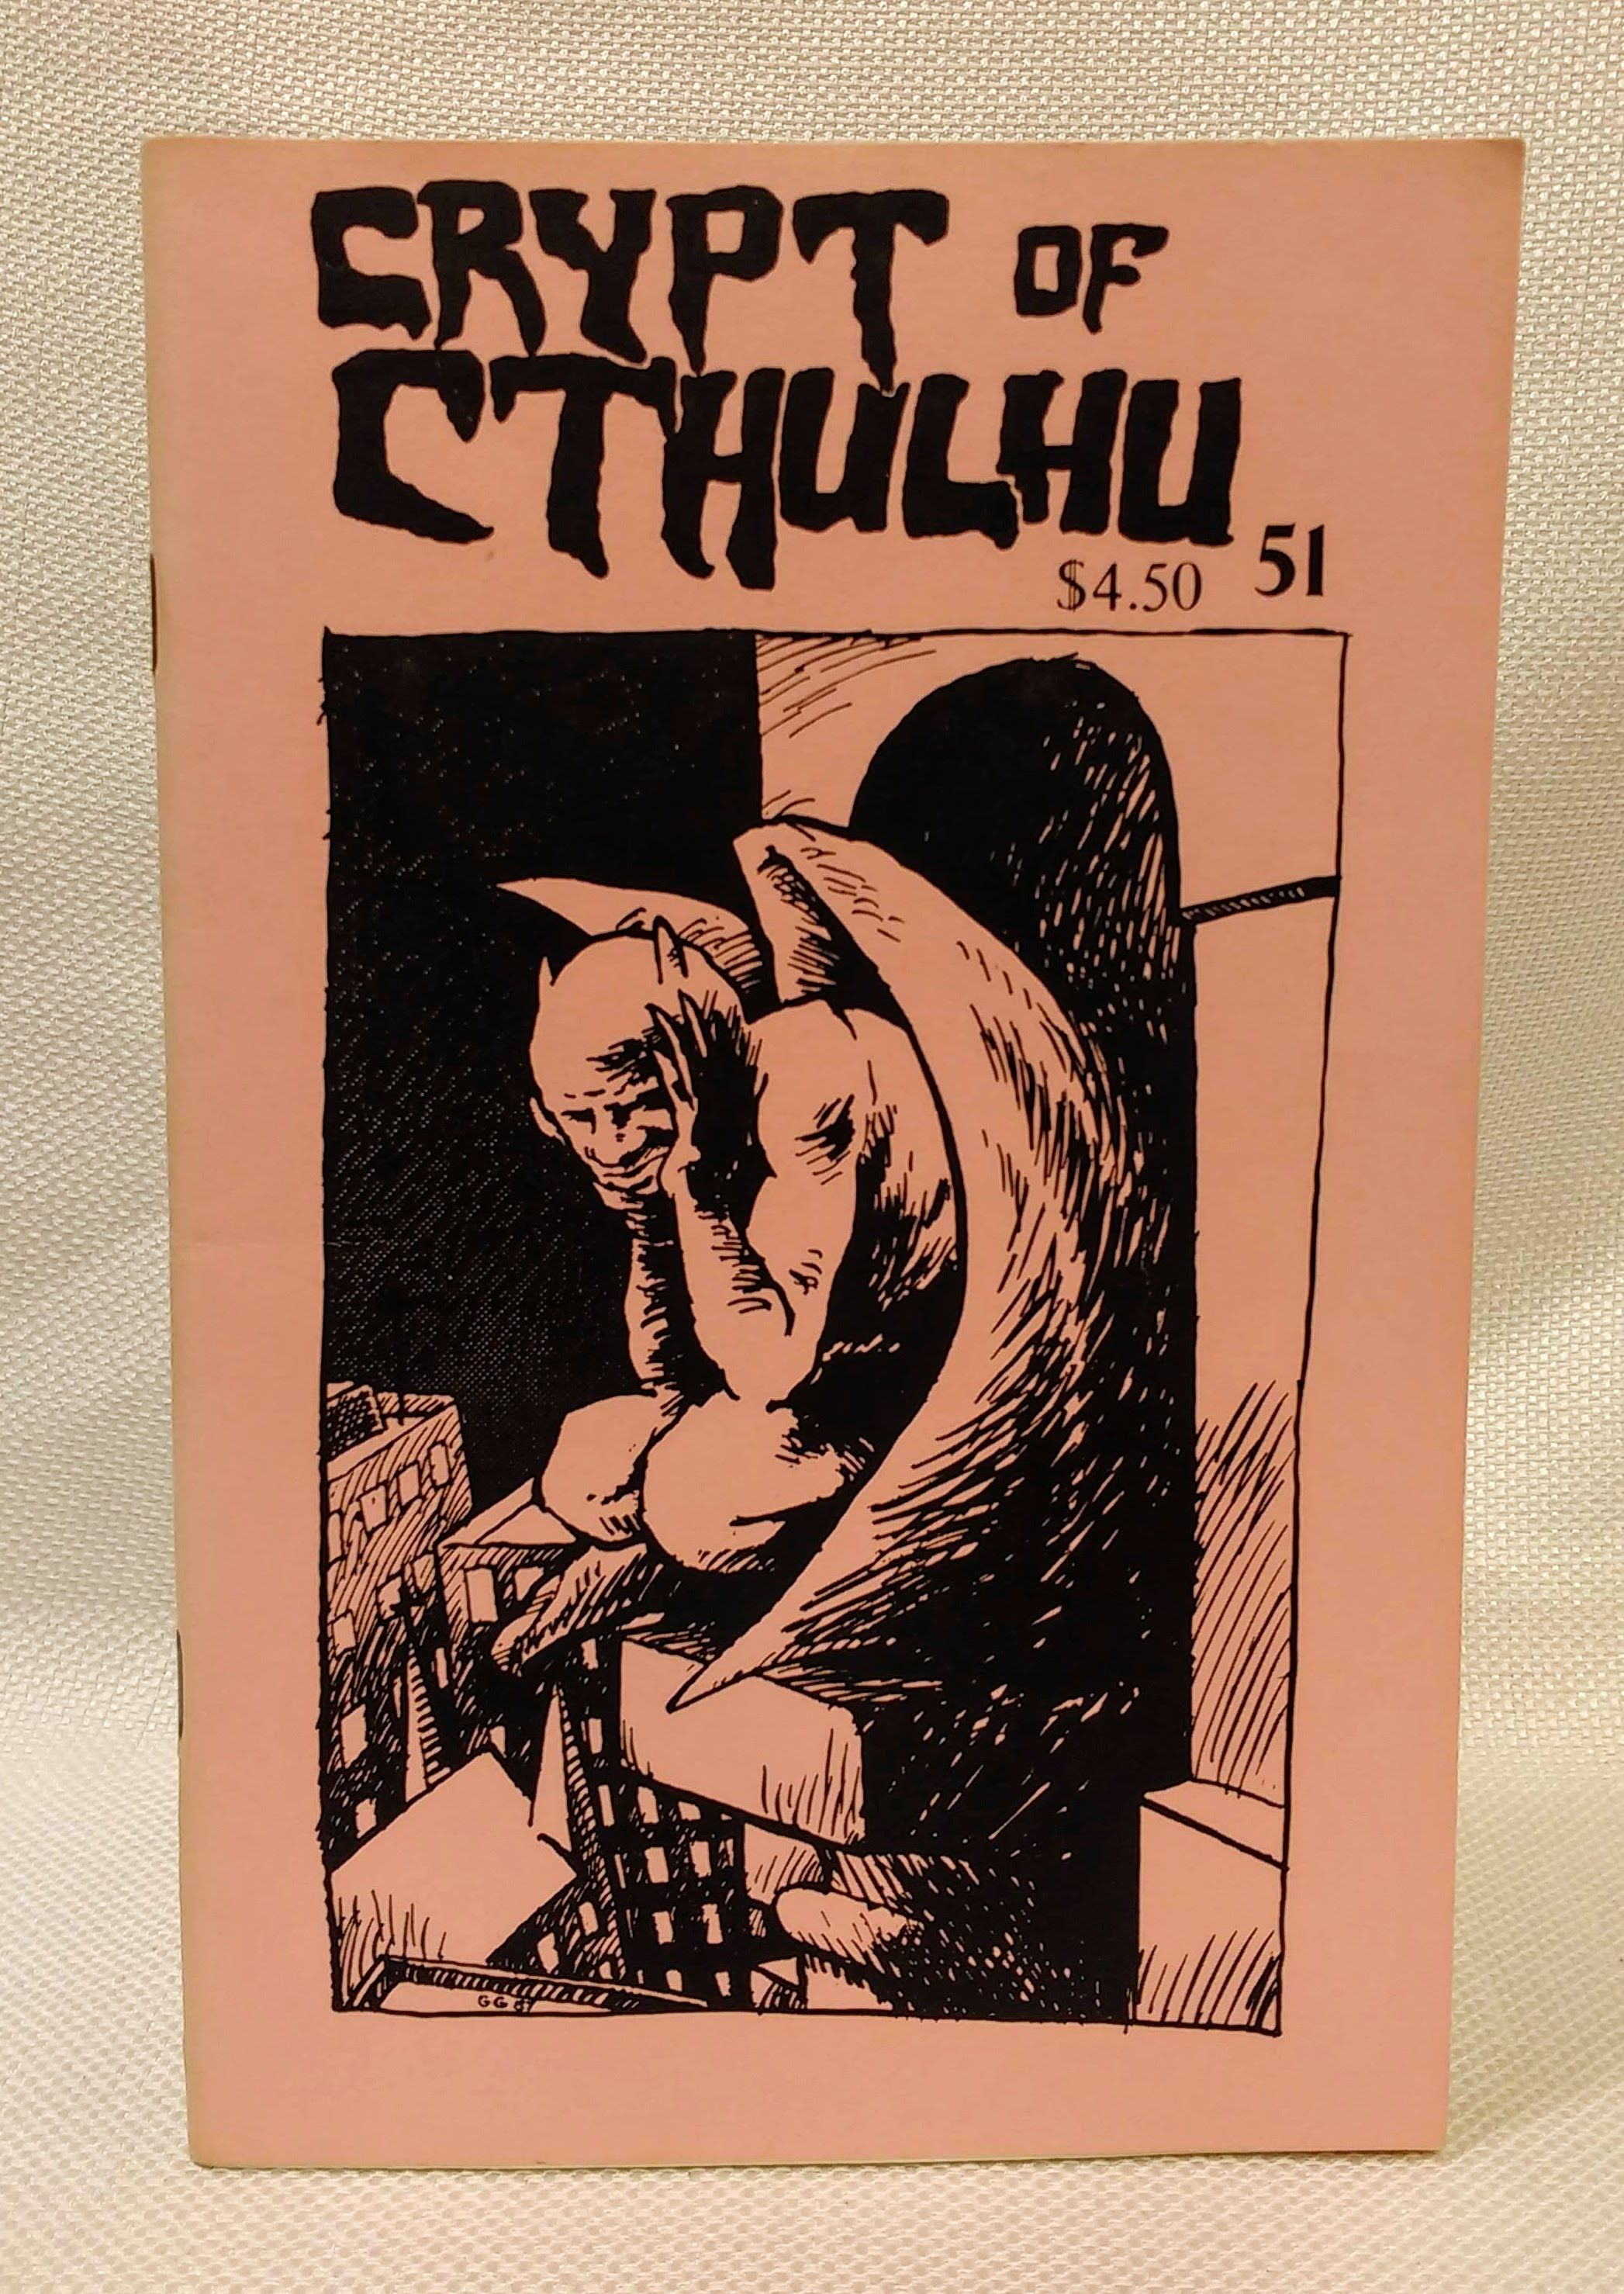 Crypt of Cthulu; A Pulp Thriller and Theological Journal: #51 (Hallowmas 1987), Price, Robert M. [Editor]